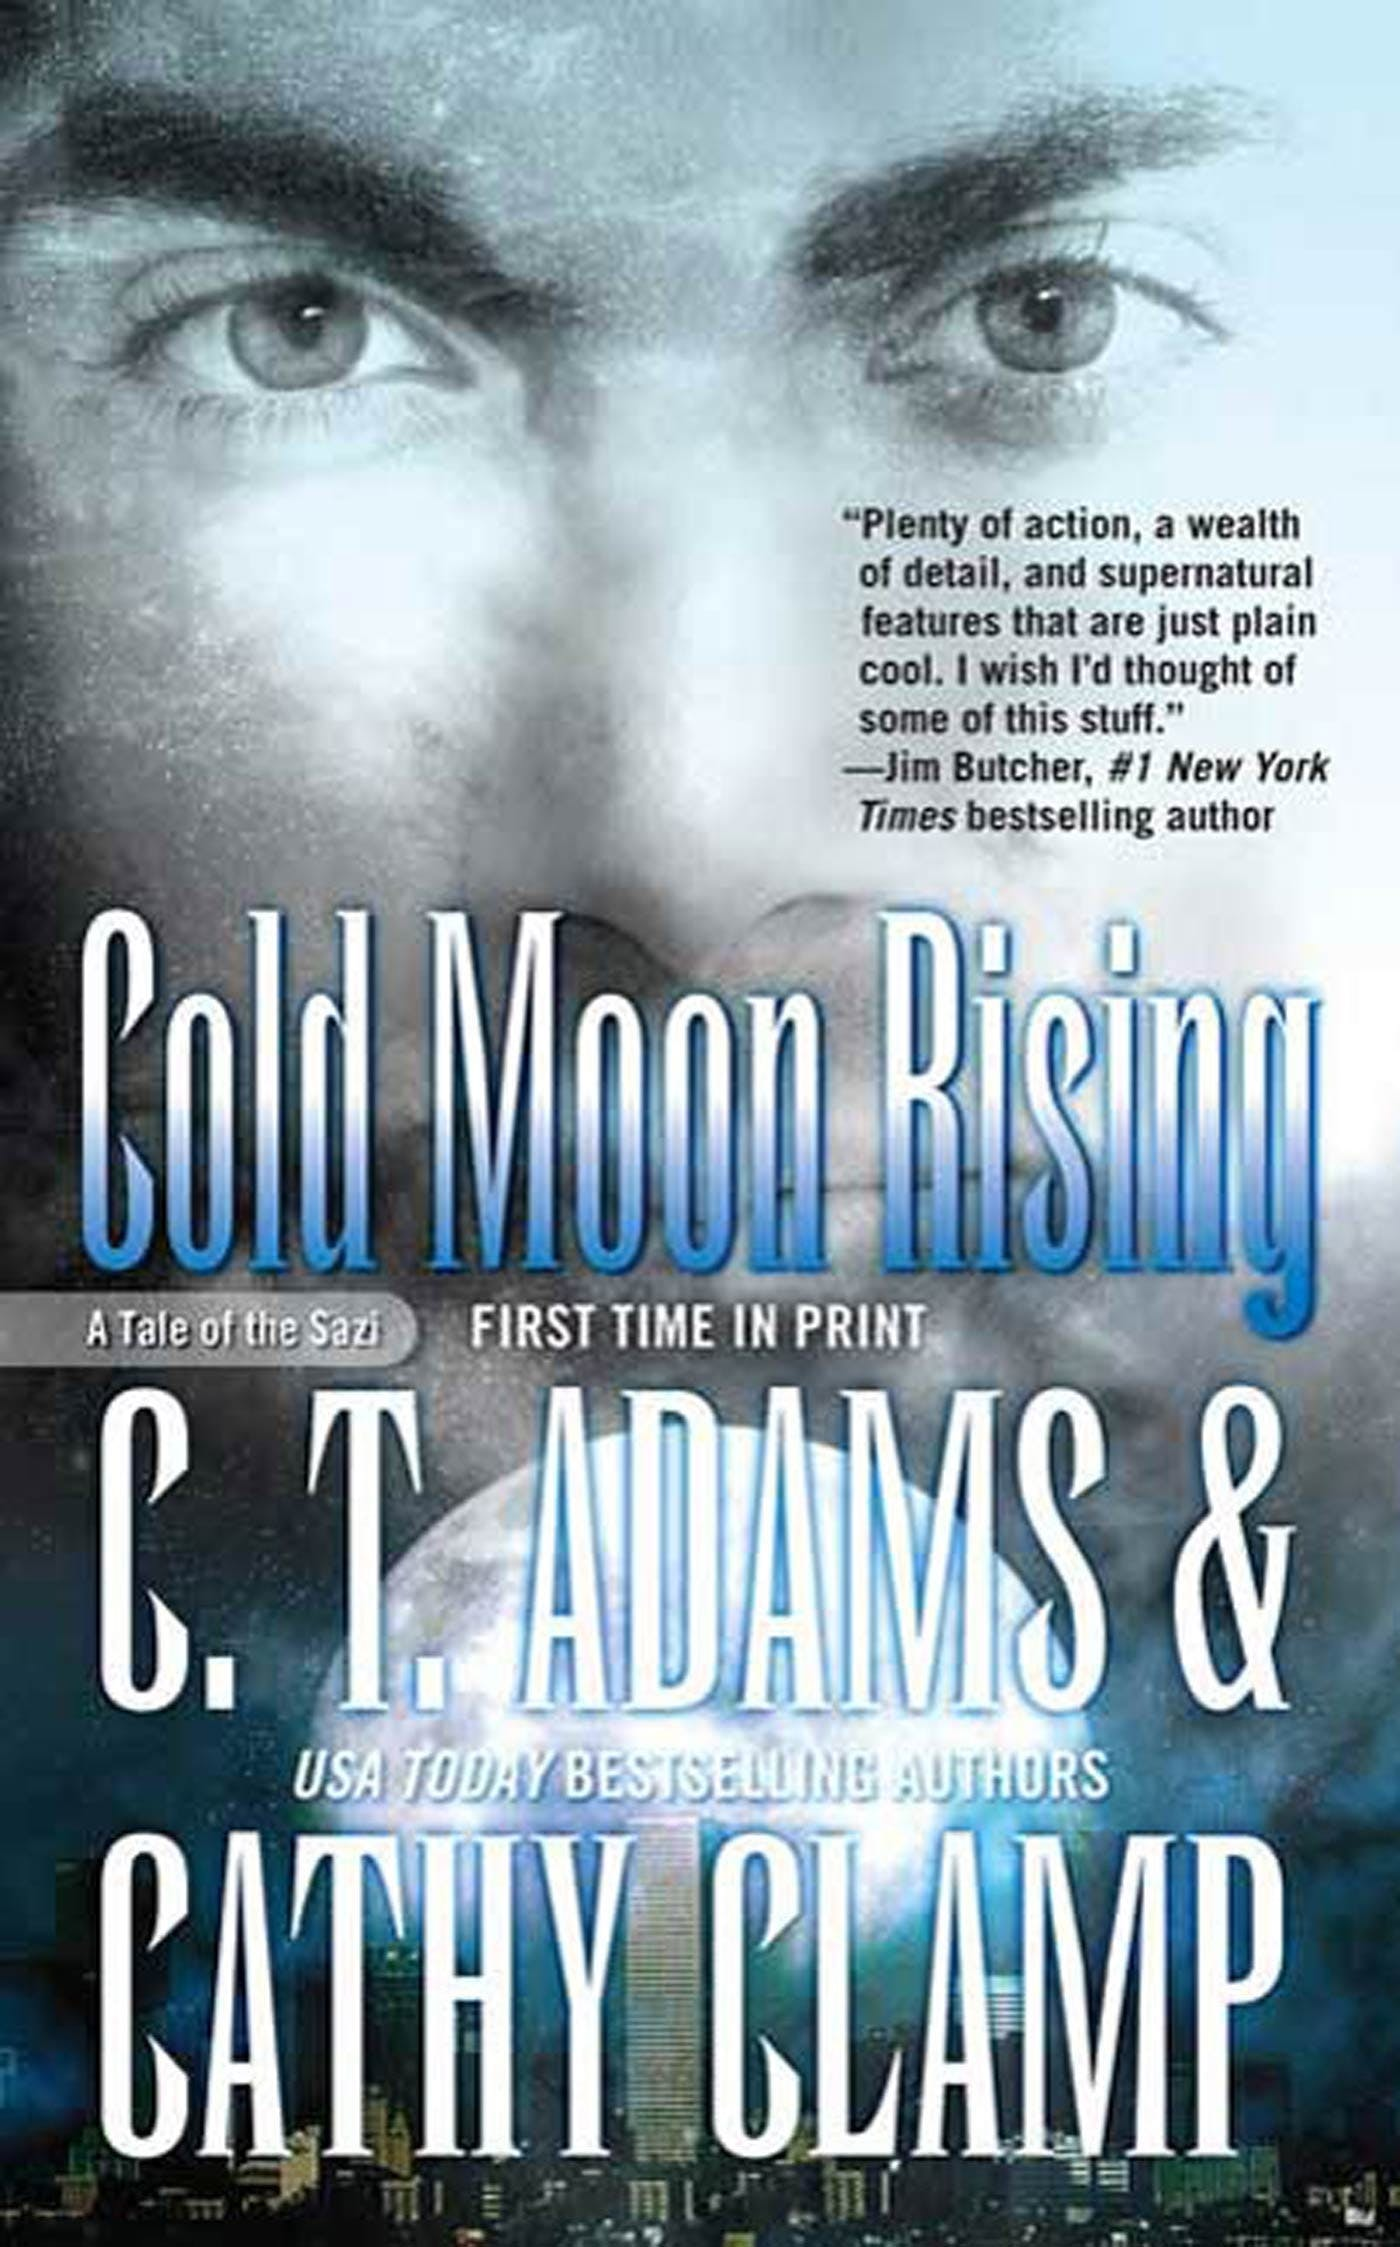 Image of Cold Moon Rising